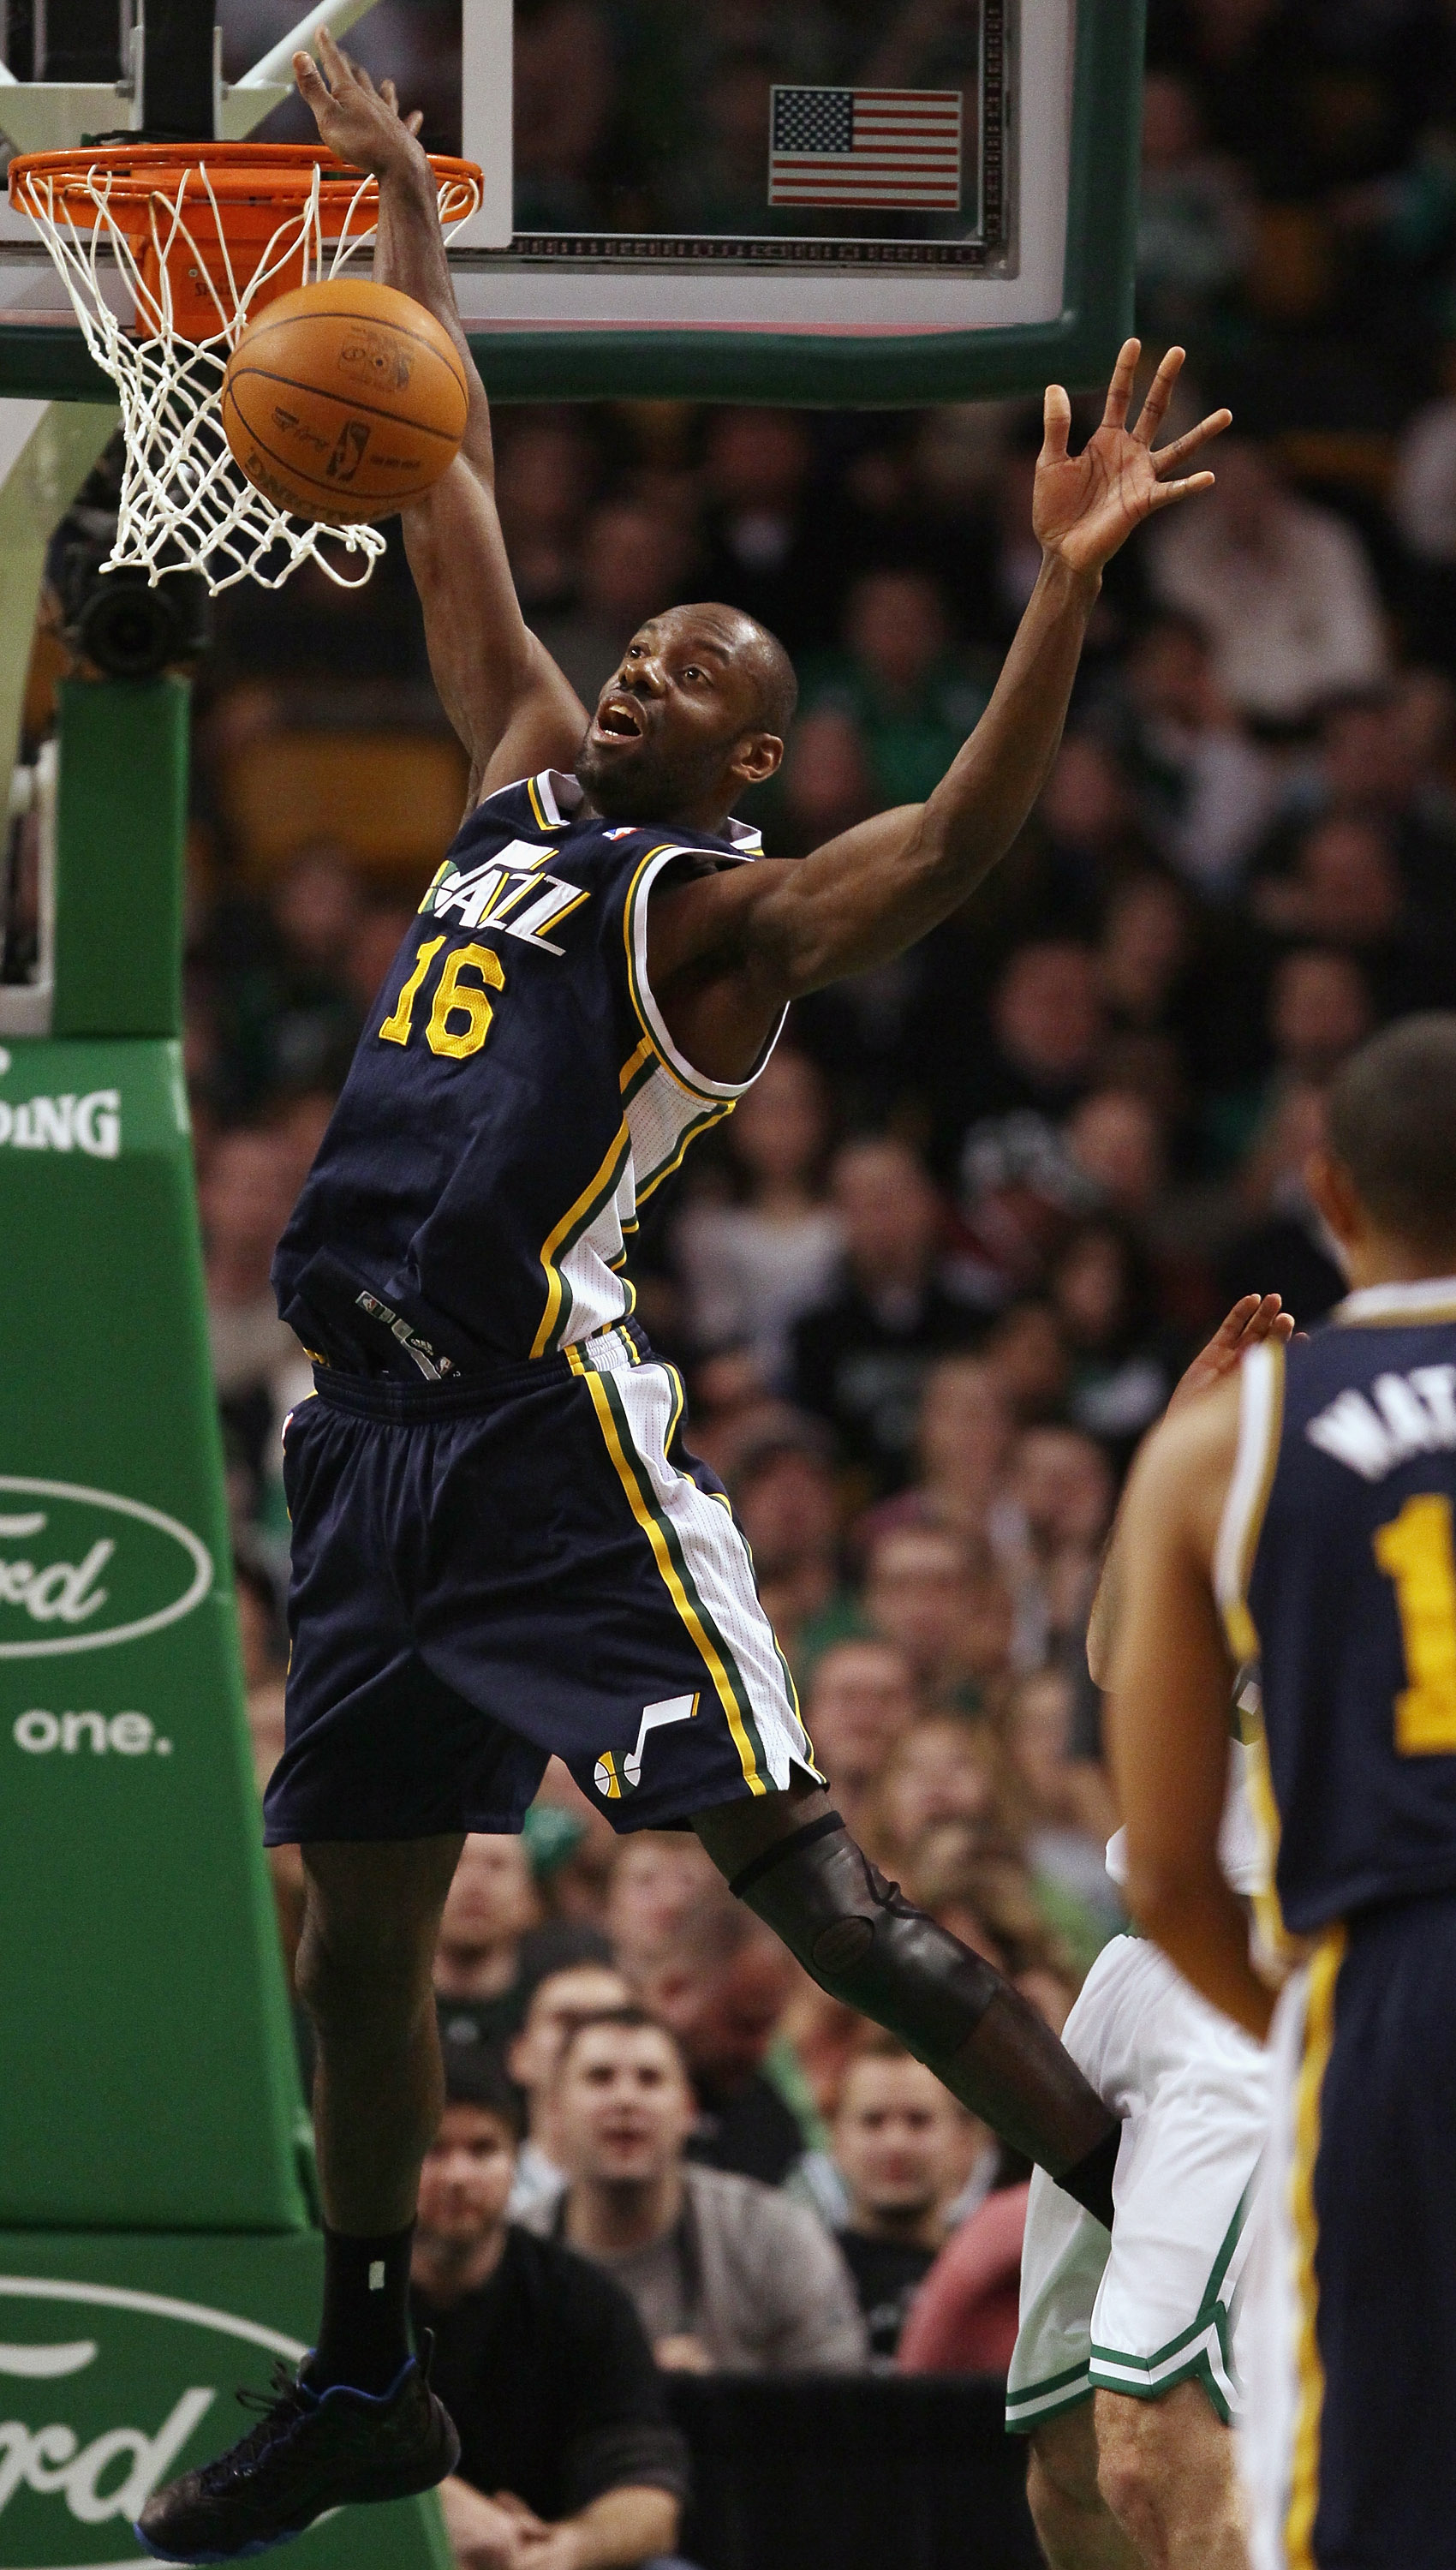 BOSTON, MA - JANUARY 21:  Francisco Elson # 16 of the Utah Jazz loses control of the ball in the second half against the Boston Celtics on January 21, 2011 at the TD Garden in Boston, Massachusetts.  The Celtics defeated the Jazz 110-86. NOTE TO USER: Use